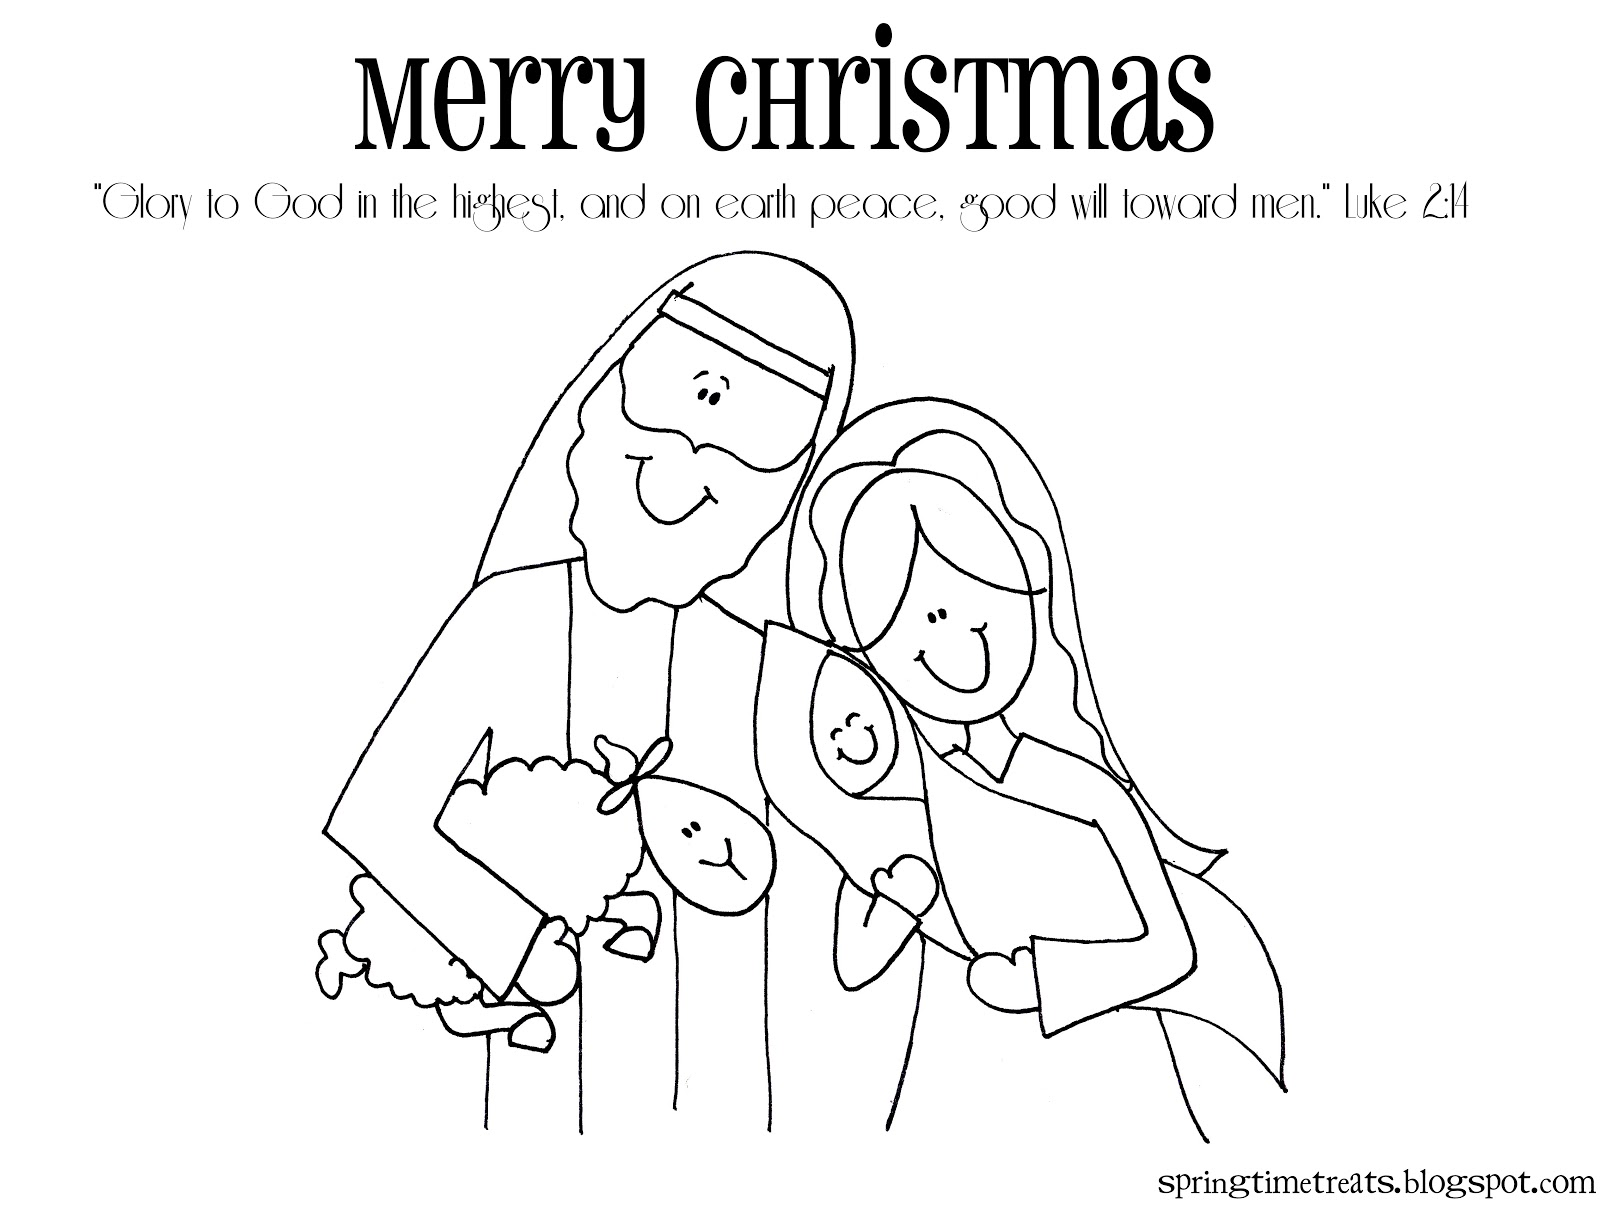 merry christmas nativity coloring page